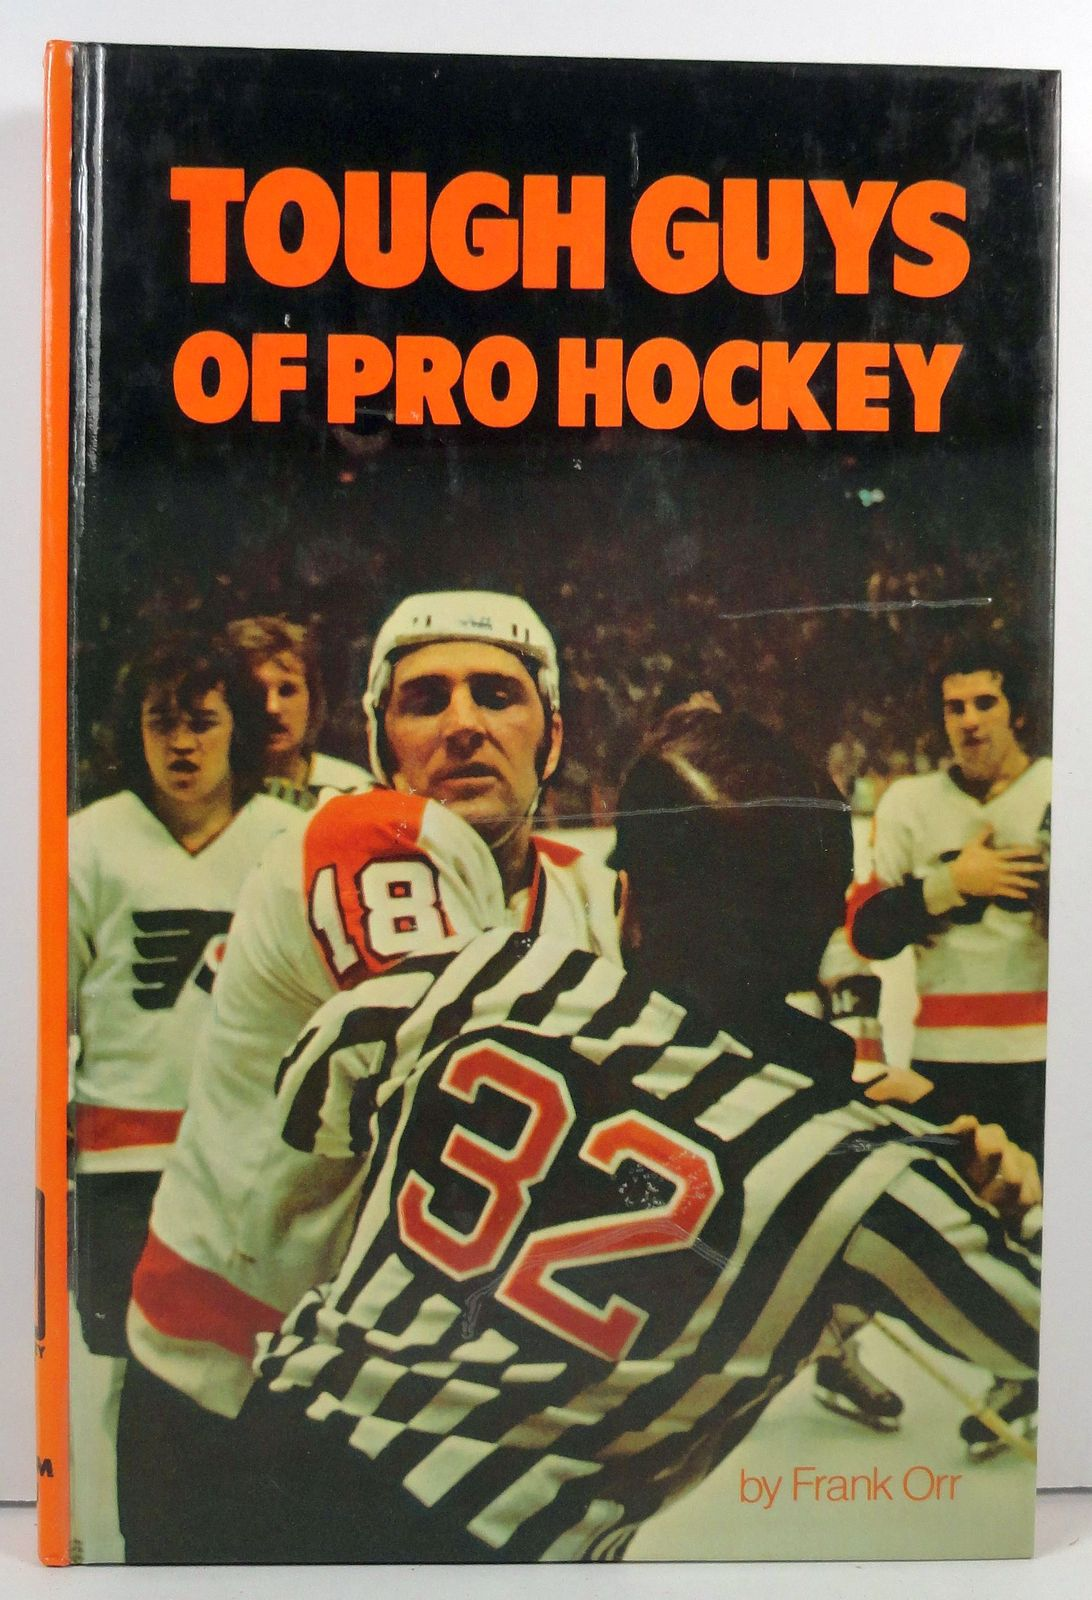 Tough Guys of Pro Hockey Frank Orr 1974 Pro Hockey Library